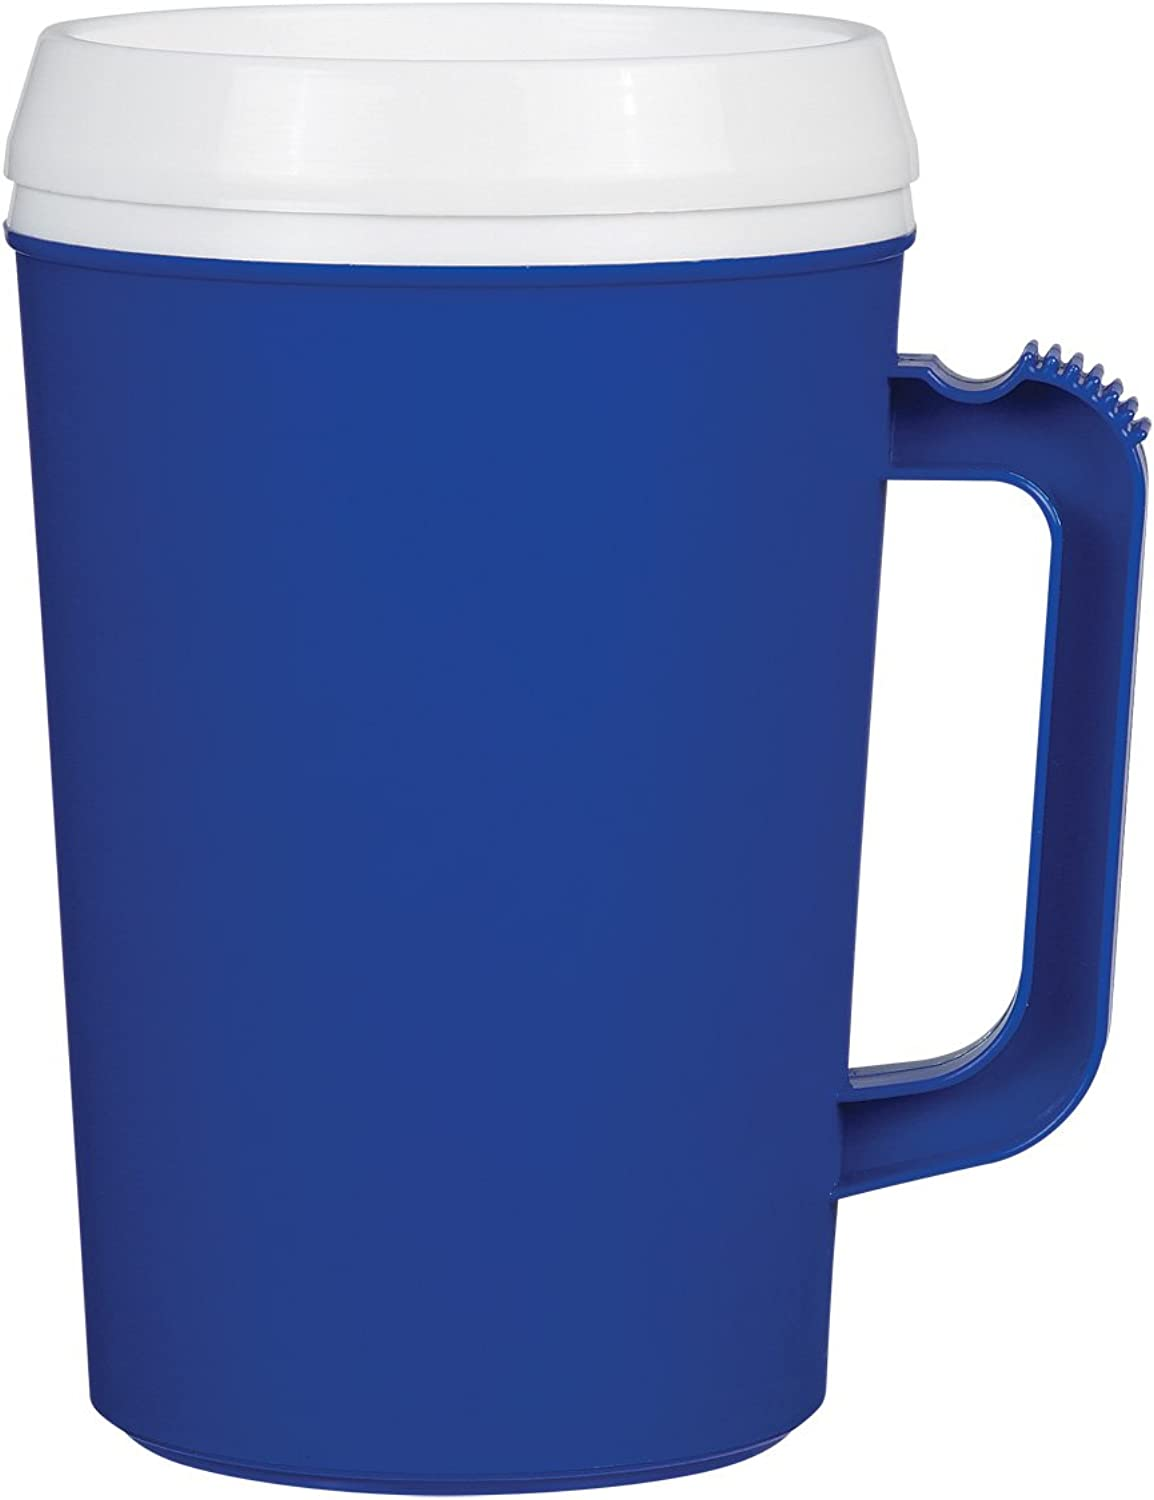 Logotastic 5522-be2Thermo Isoliert Becher (24Pack), 48,3cm 16,5Oz 22Oz, blau